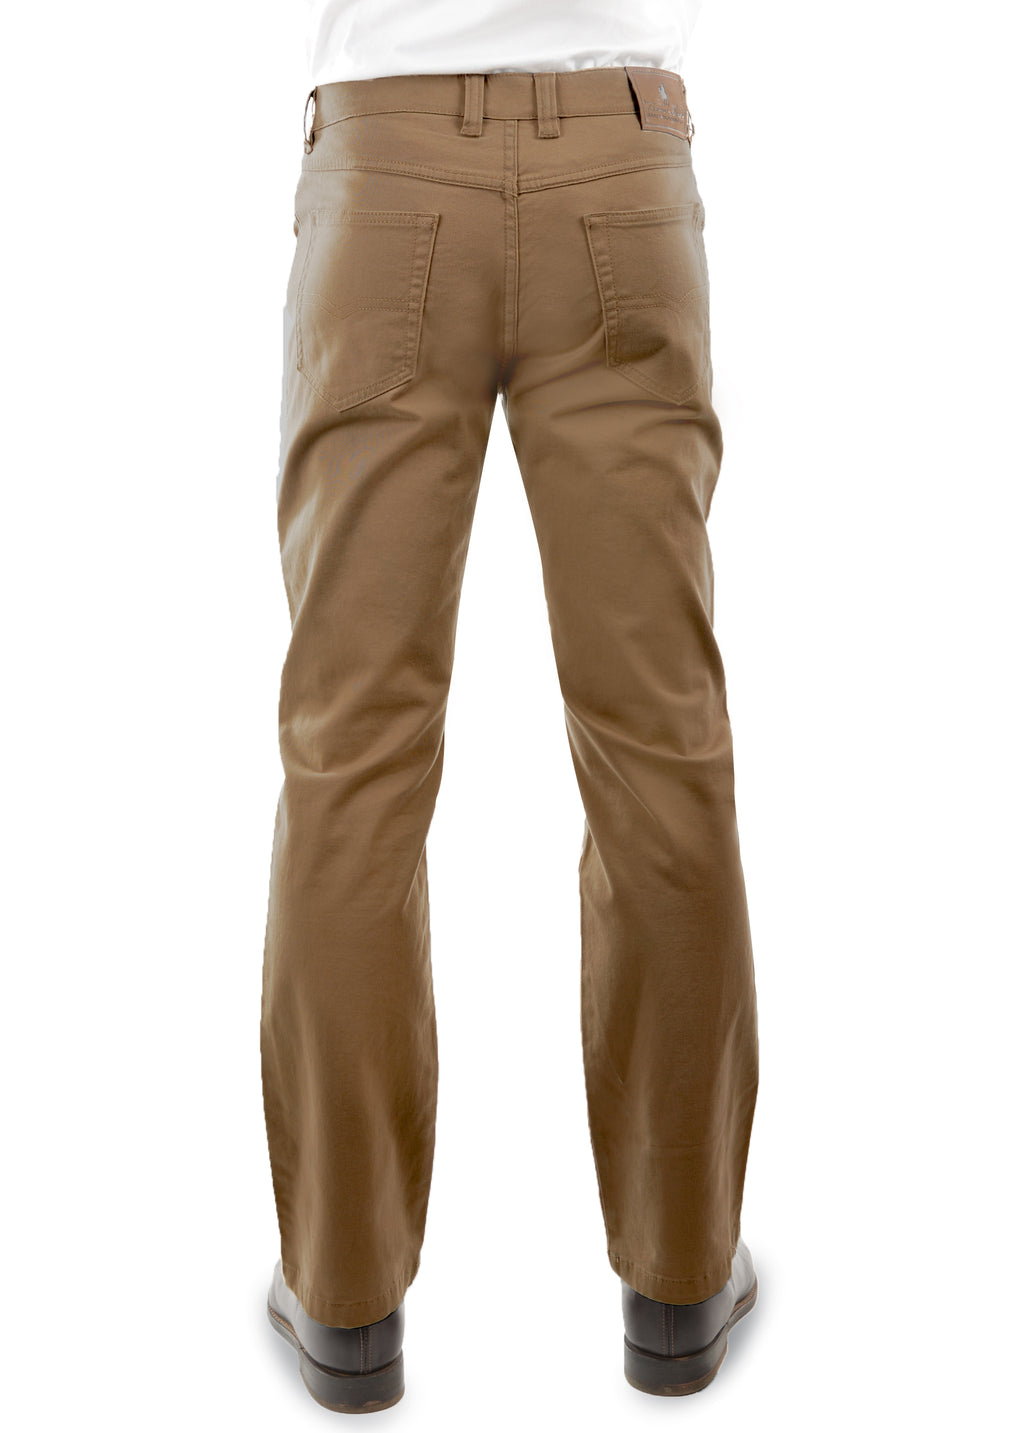 Thomas Cook | Mens | Jeans | Tailored | 32"